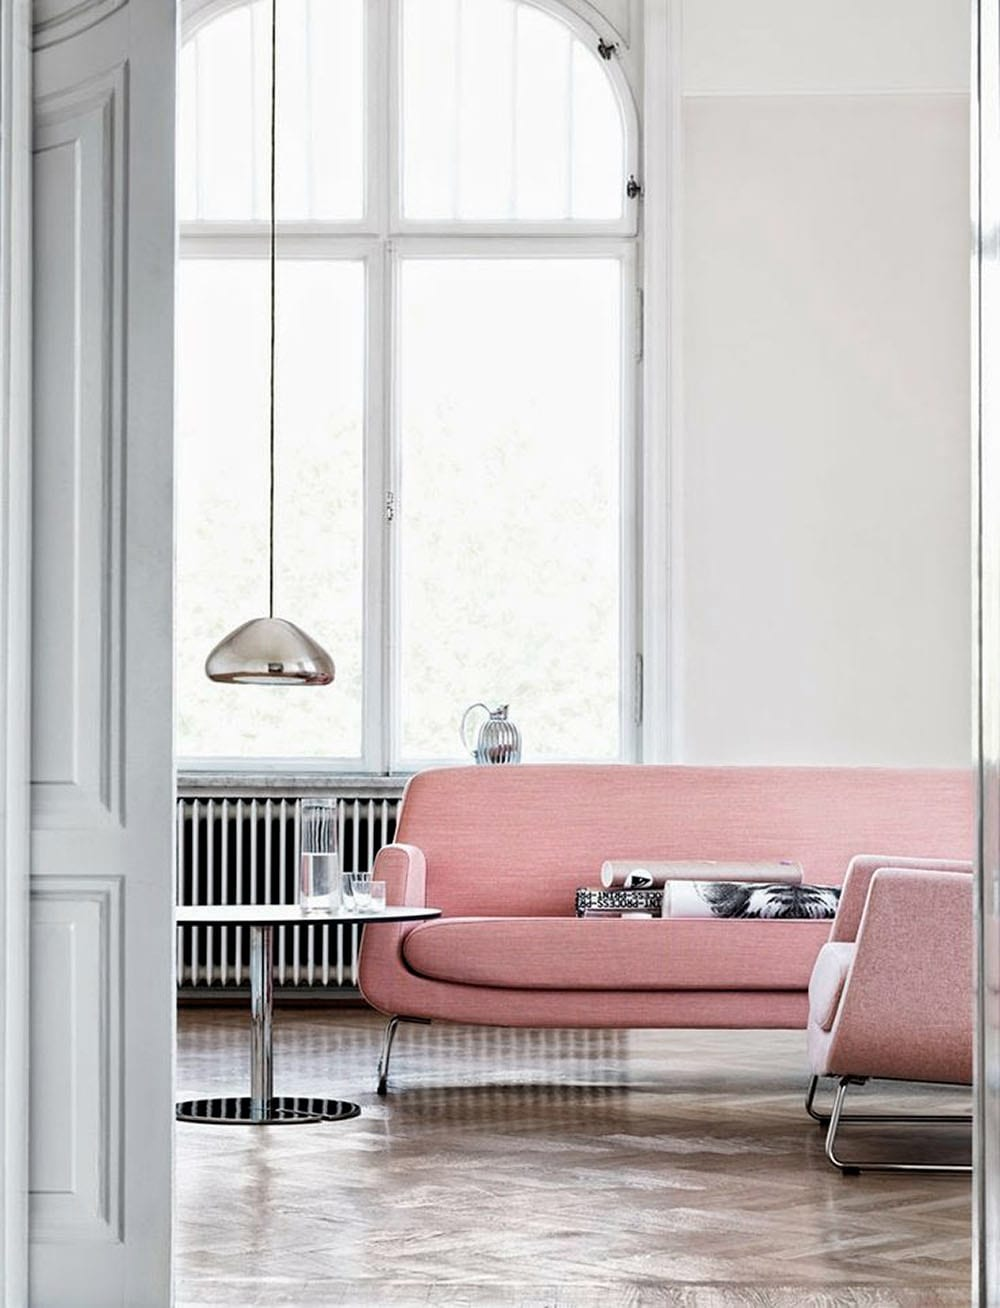 StyleAndMinimalism | Interior Inspiration | Blush Pink + Charcoal Grey